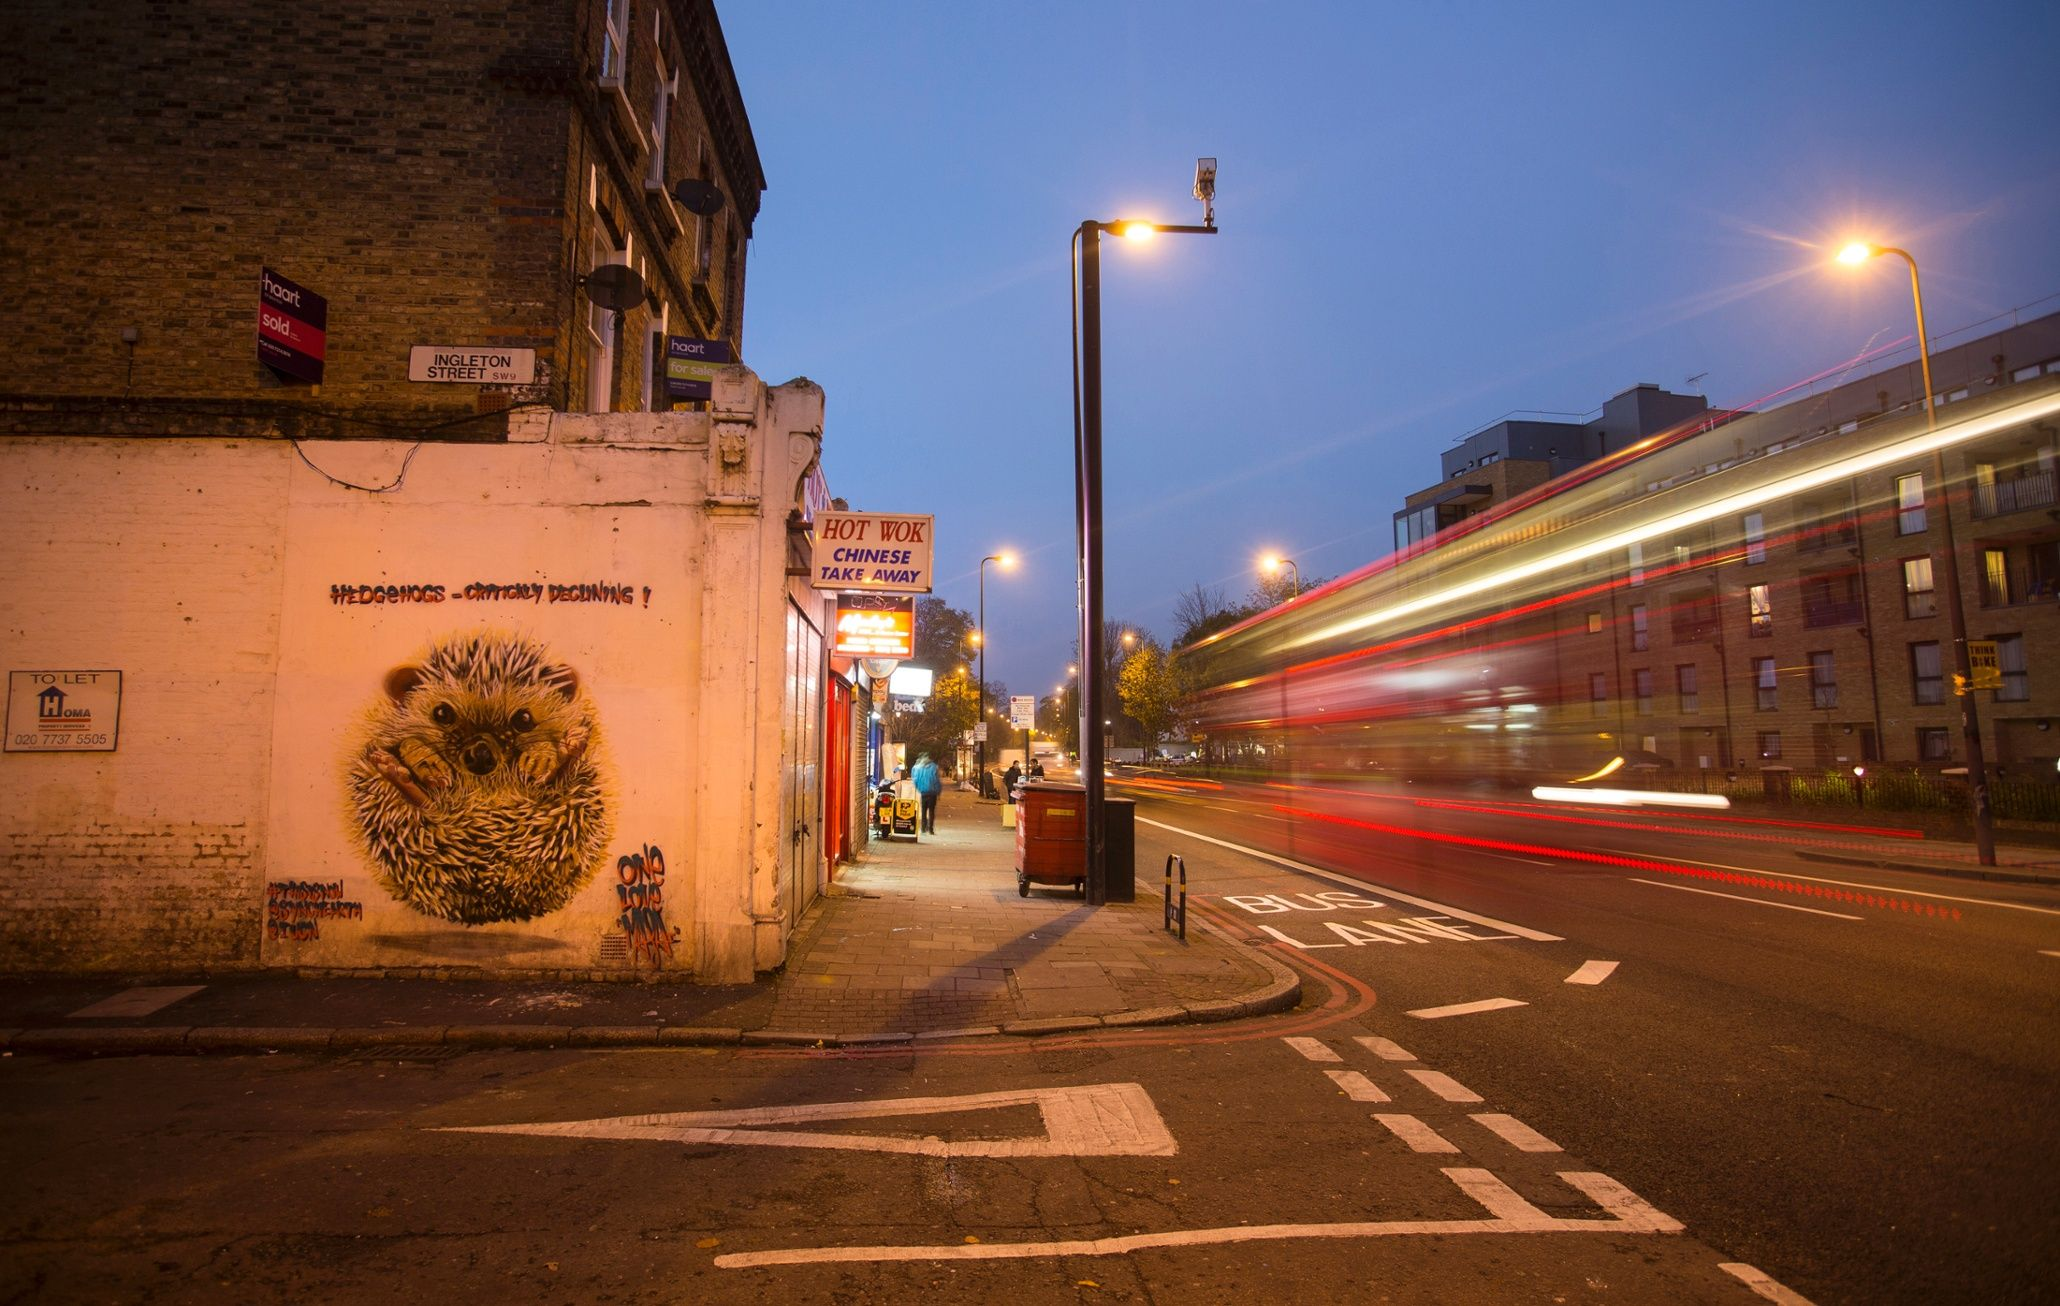 Hedgehog by Brixton Road at night Photograph: Toby Madden/Synchronicity Earth Street artist Louis Masaai's London murals, including a hedgehog, stag beetle and house sparrow, highlight species loss within the UK. The campaign, in conjunction with charity Synchronicity Earth, marks the IUCN Red List's 50th anniversary this year